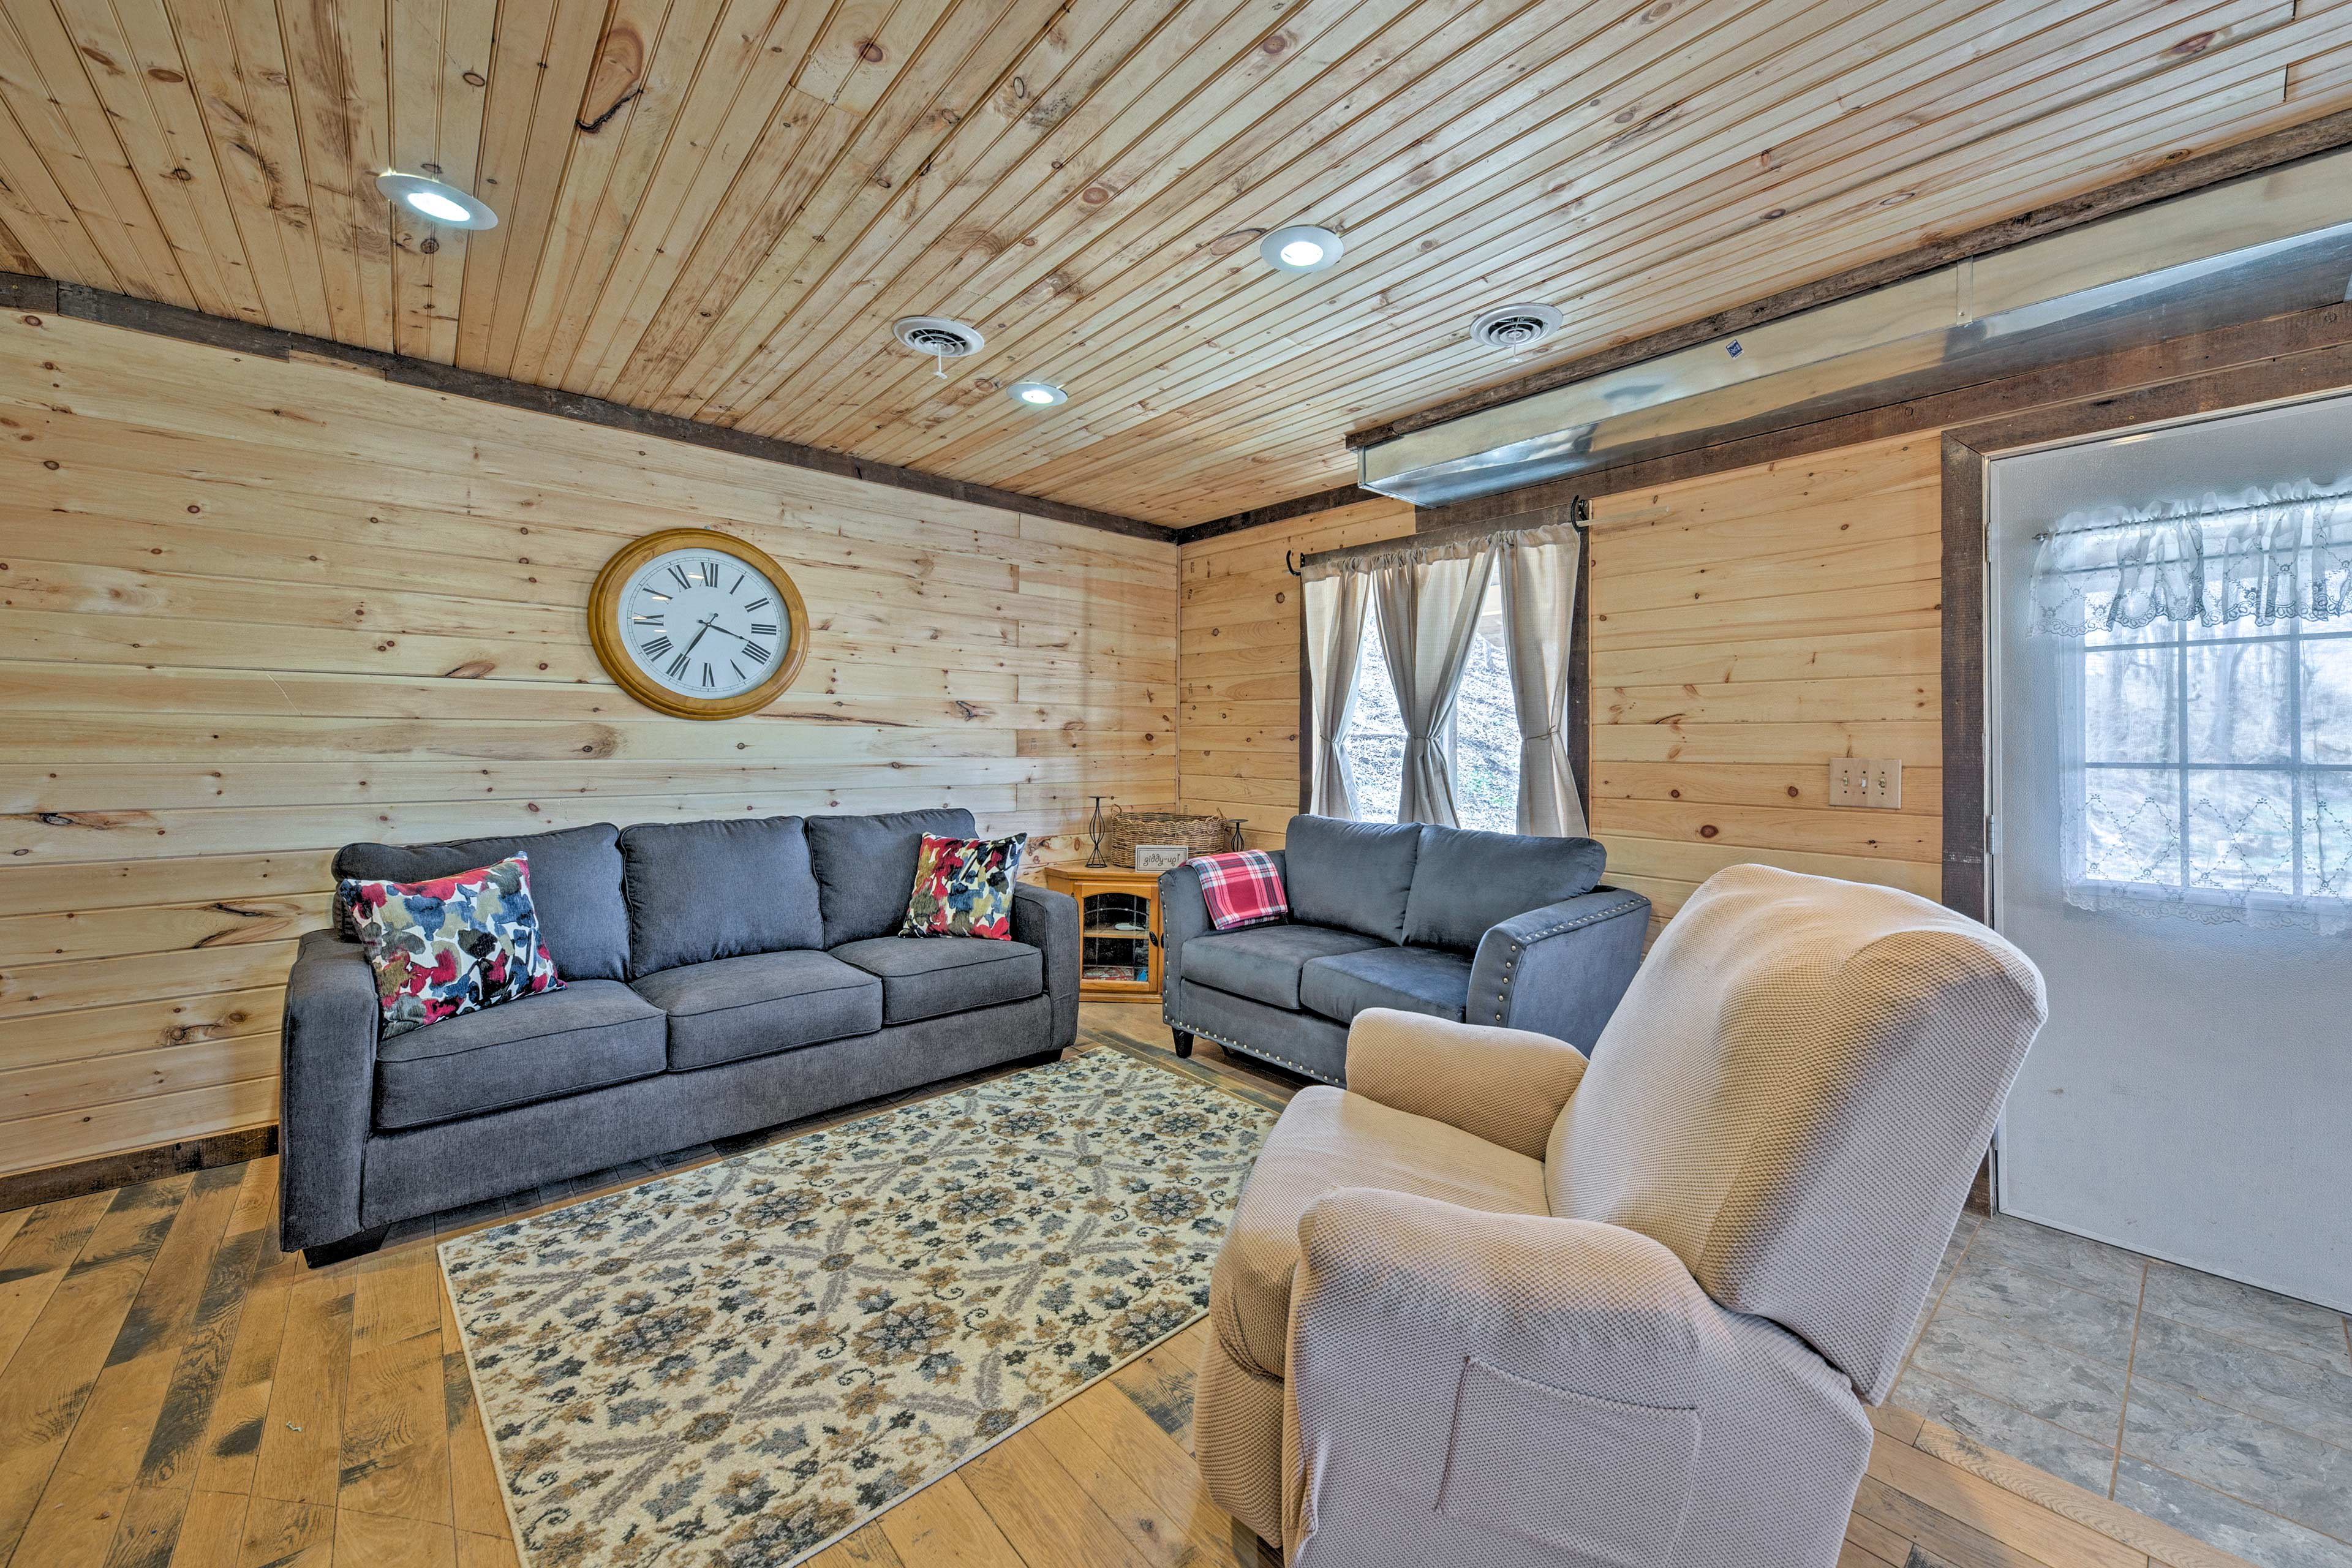 Inside you'll discover 2 bedrooms, 1 bathroom, and sleeping for 14.